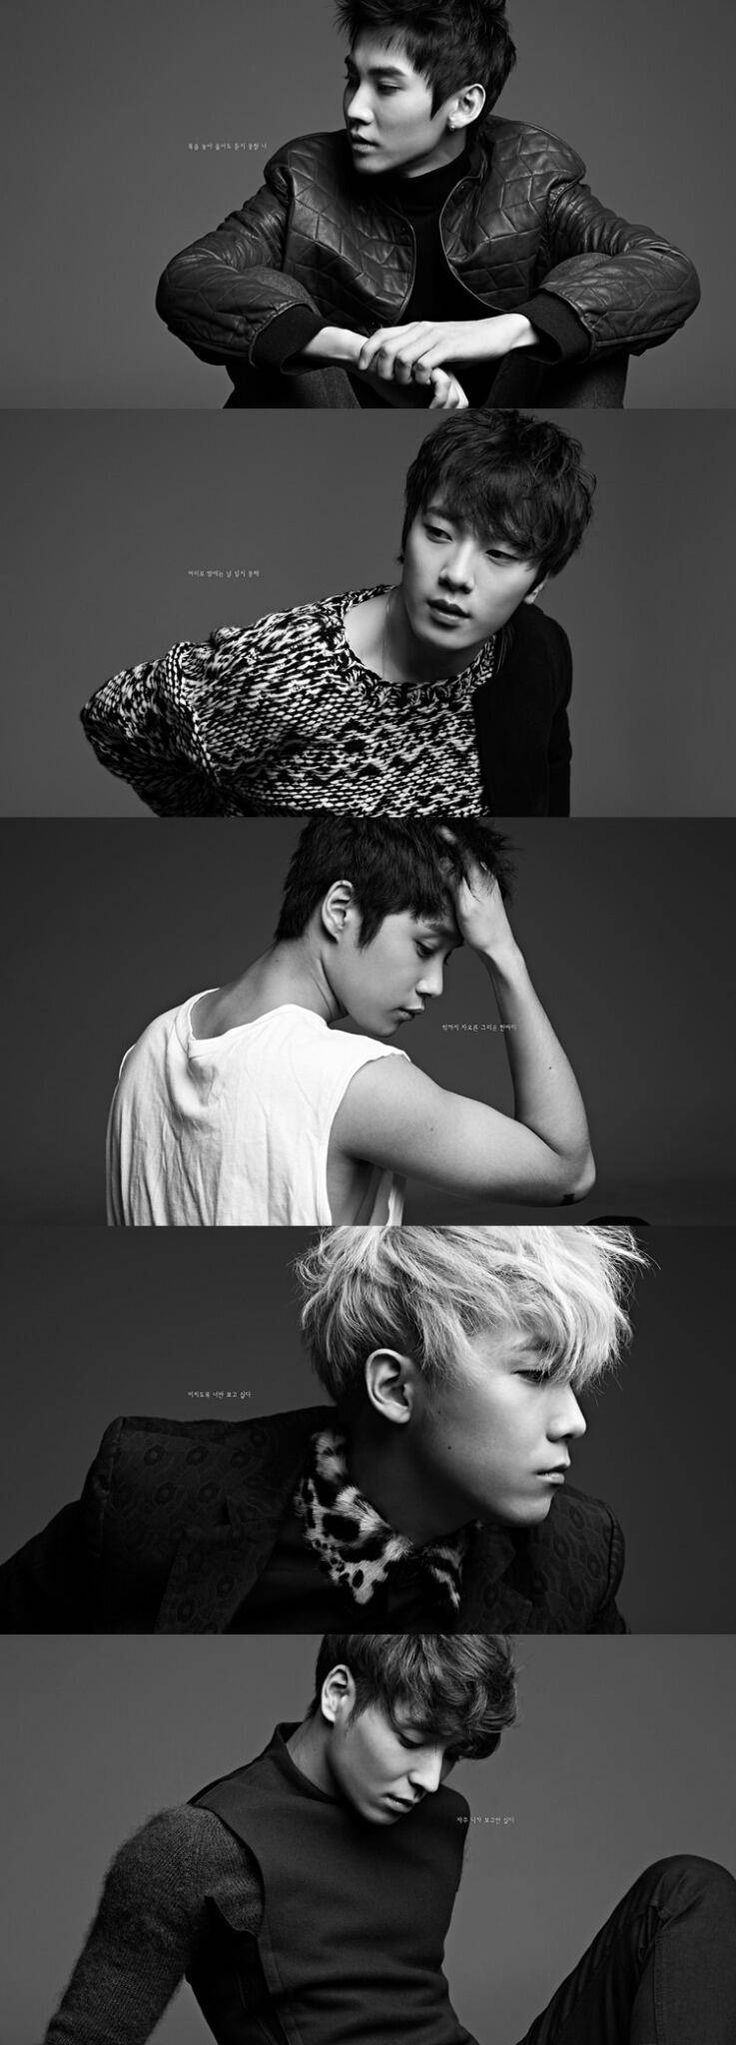 F.T. Island reveals image teasers for 'The Mood' album